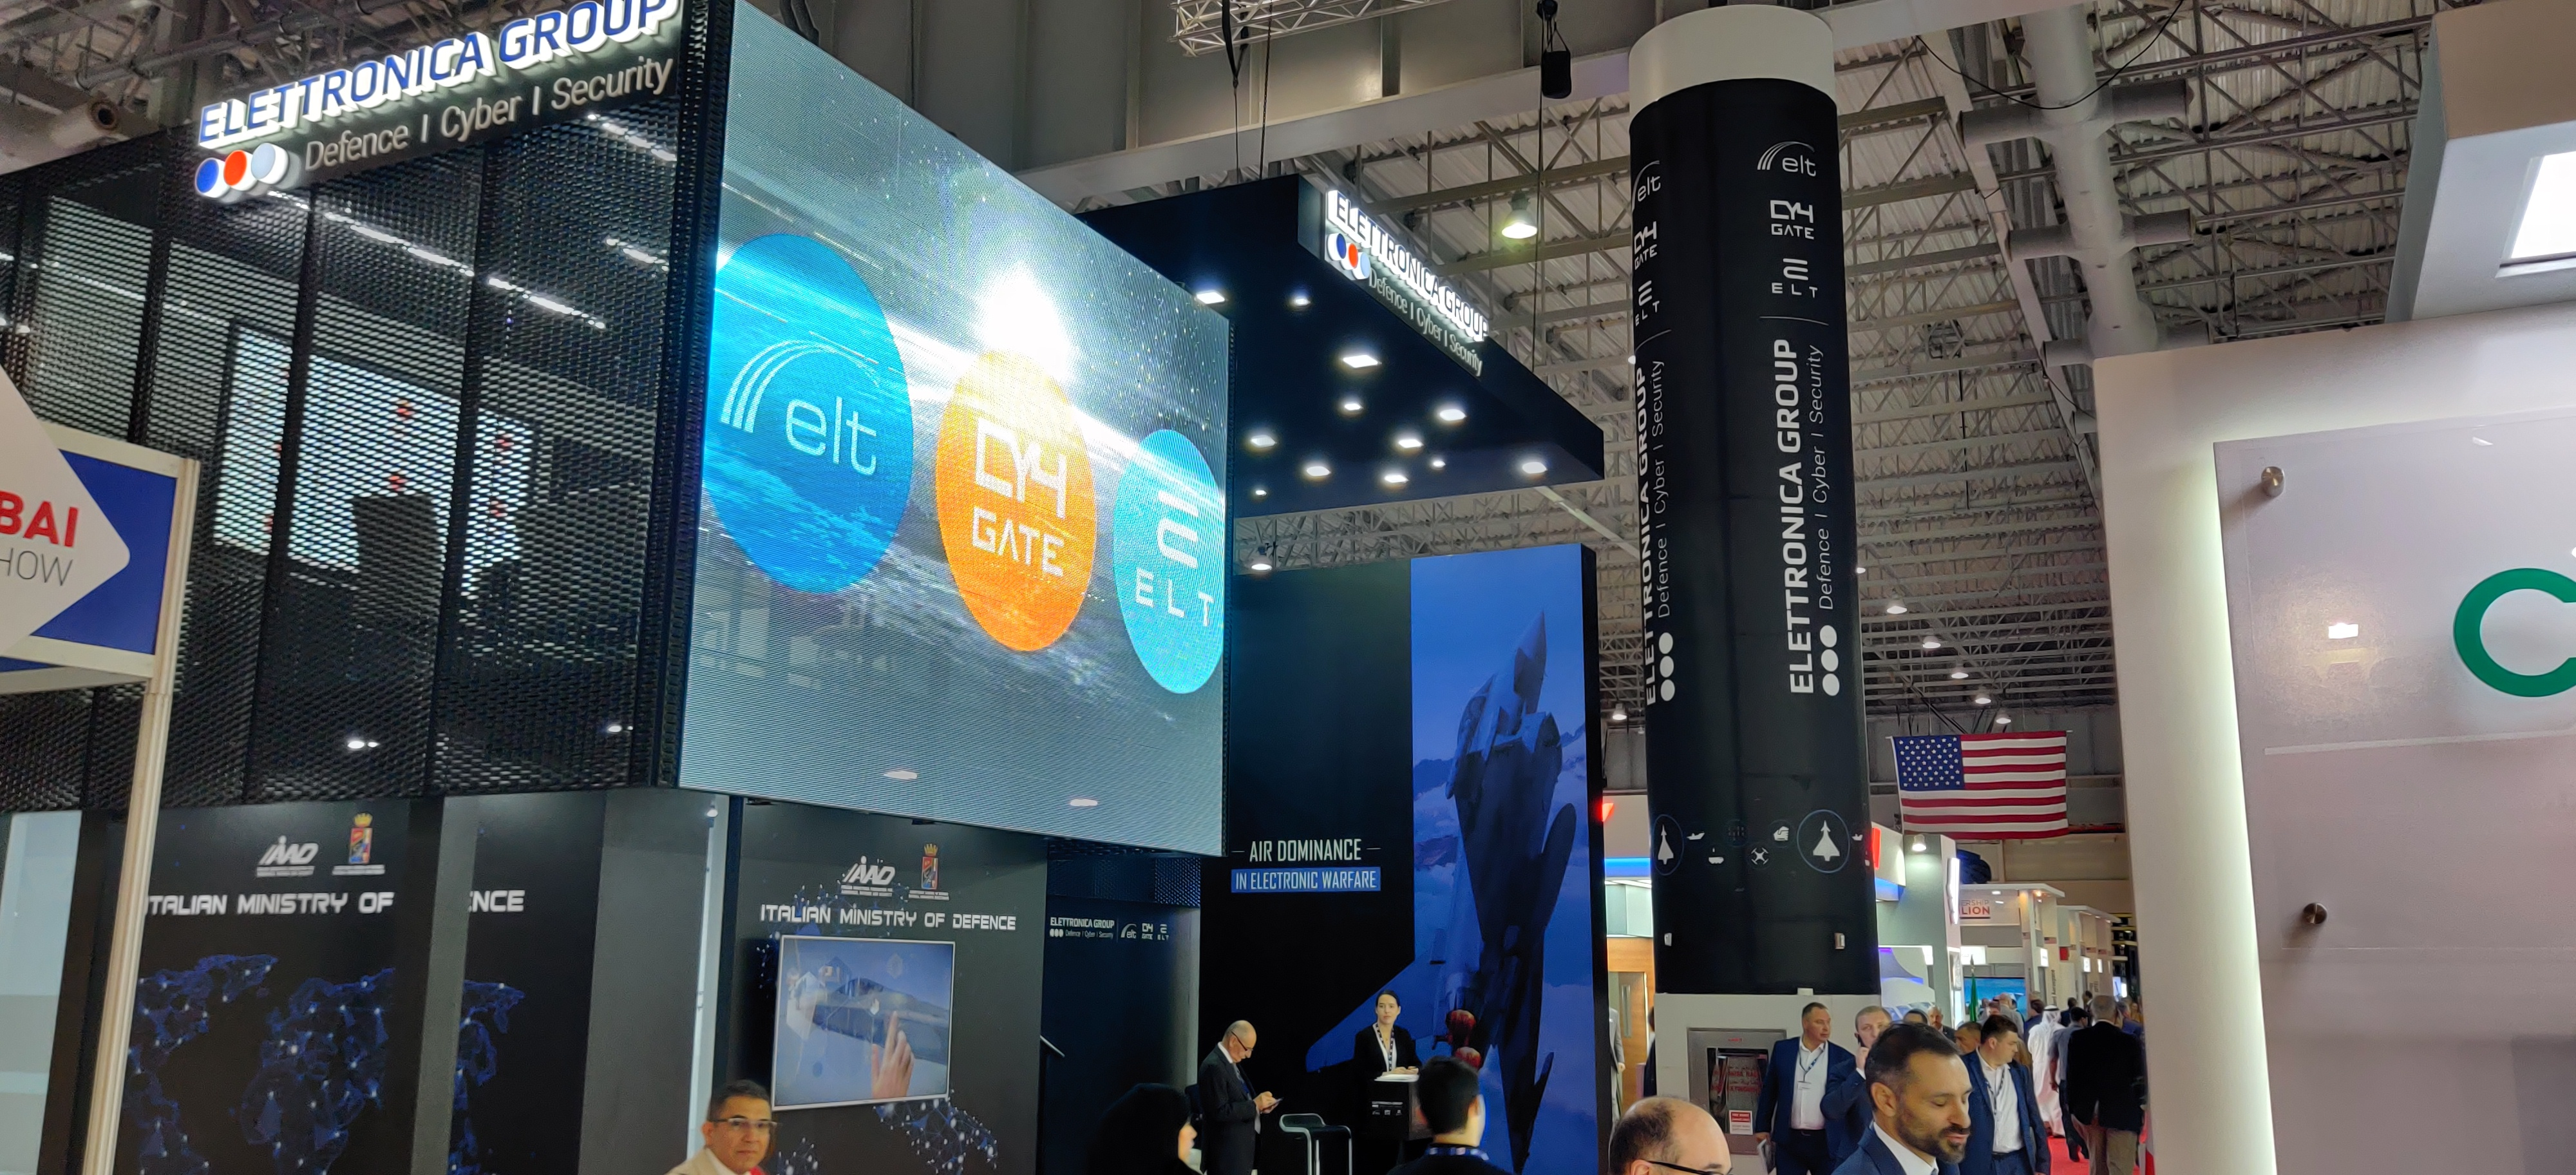 ELETTRONICA GROUP HIGHLIGHTS ITS TECHNOLOGY AT THE DUBAI AIRSHOW